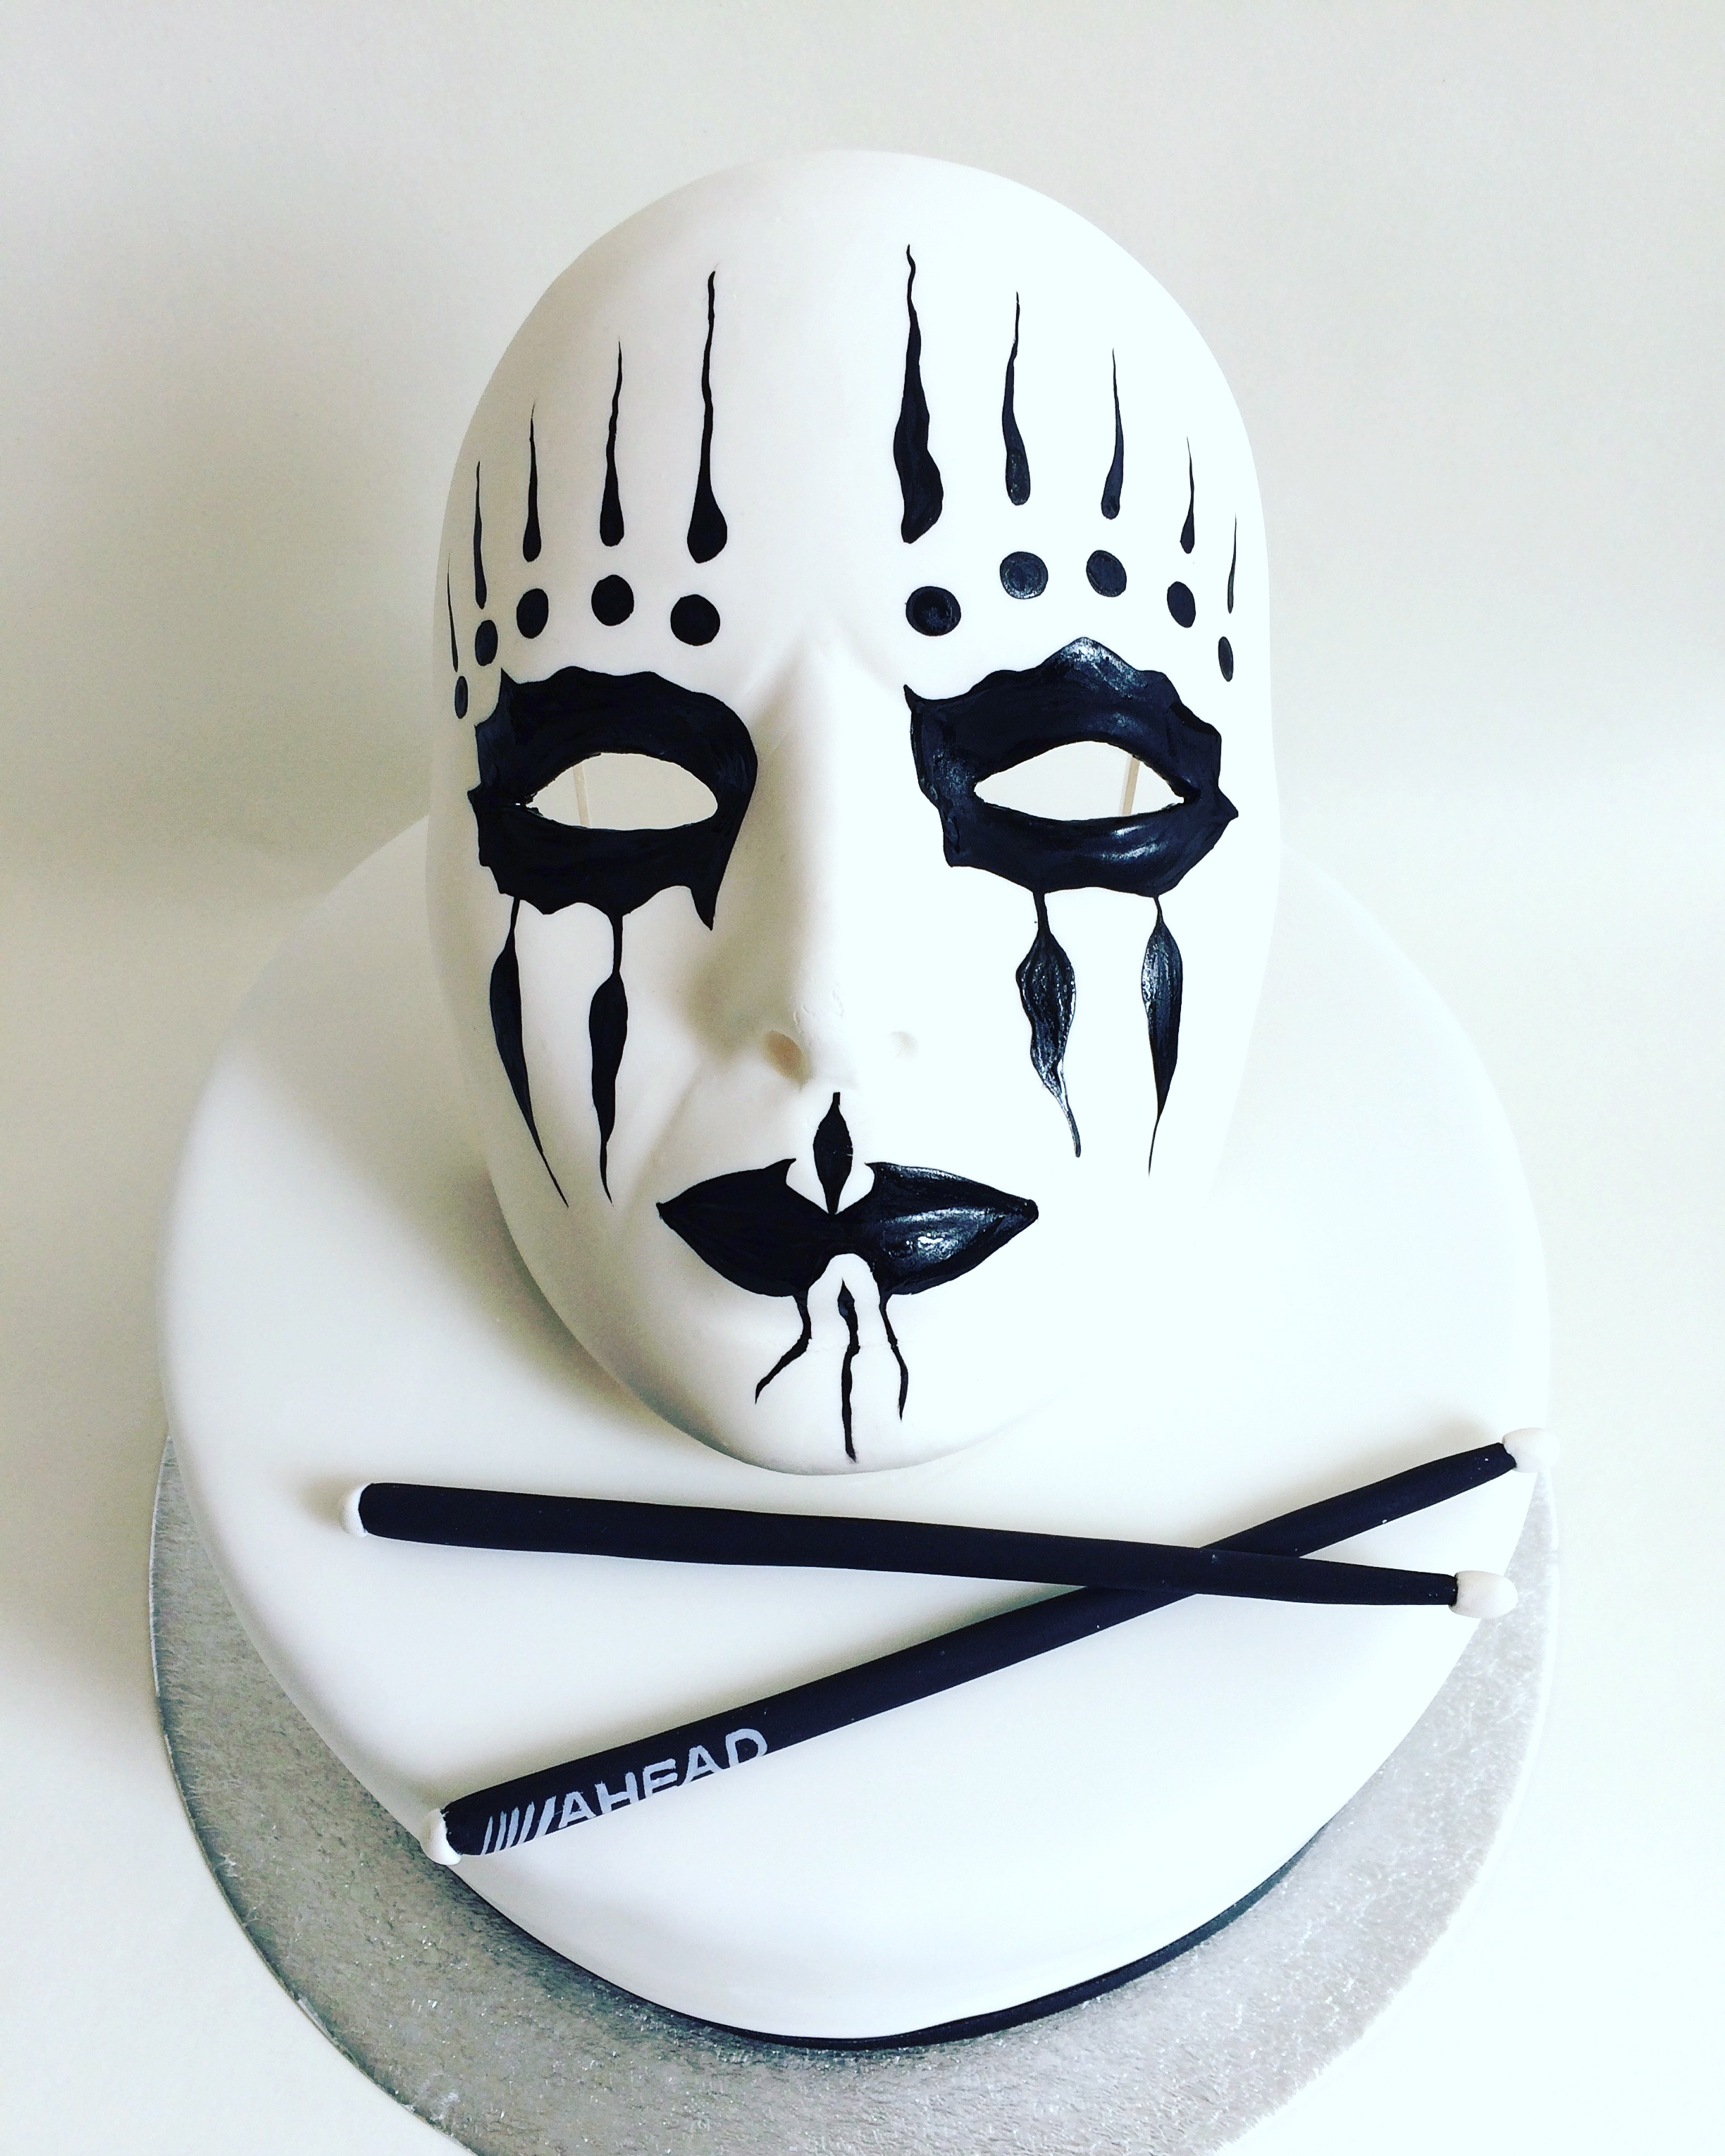 Black and white masquerade mask cake